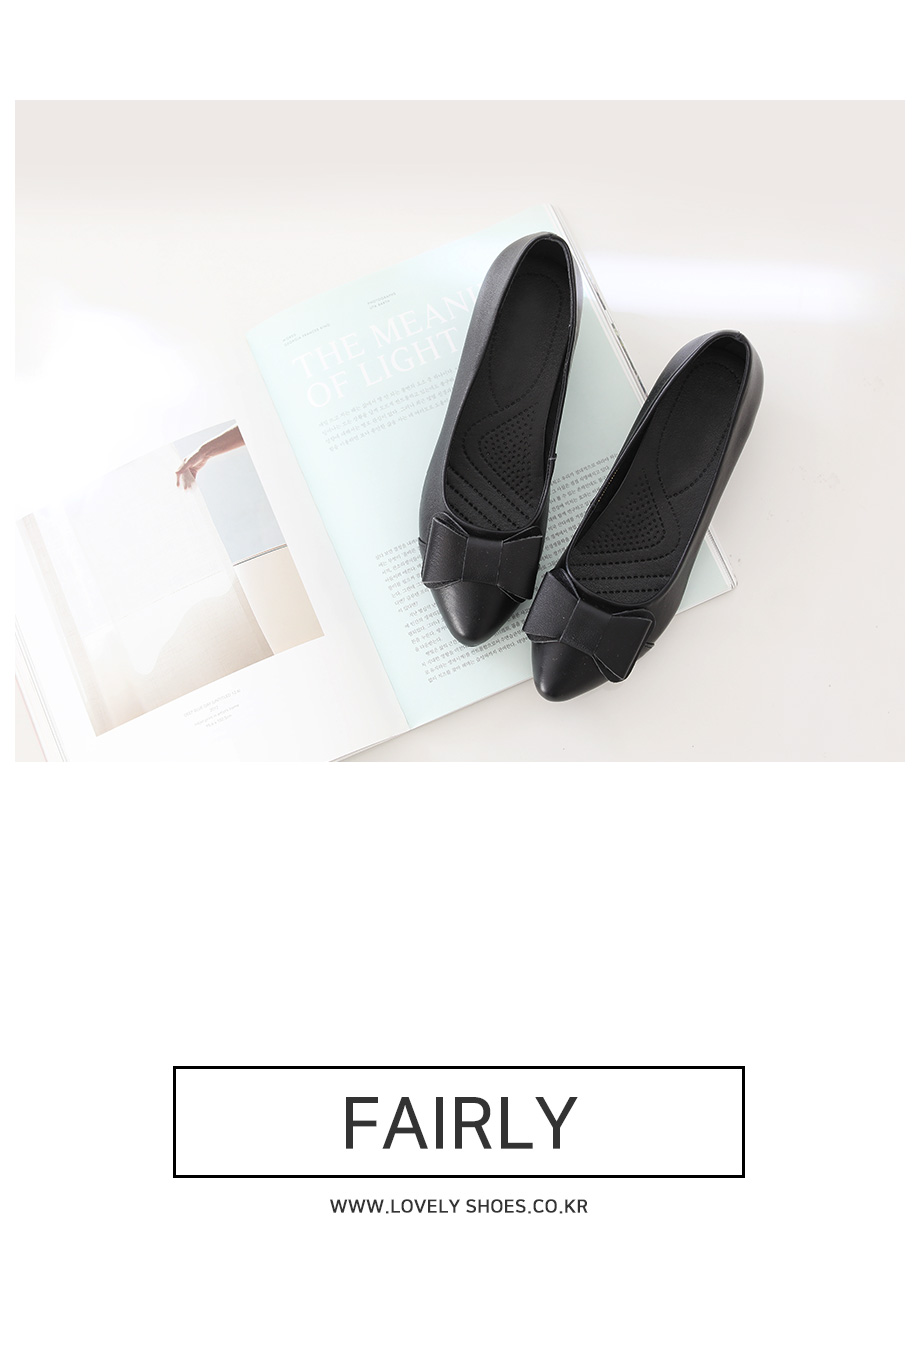 Fairy Wedge Flat Shoes 2.5cm